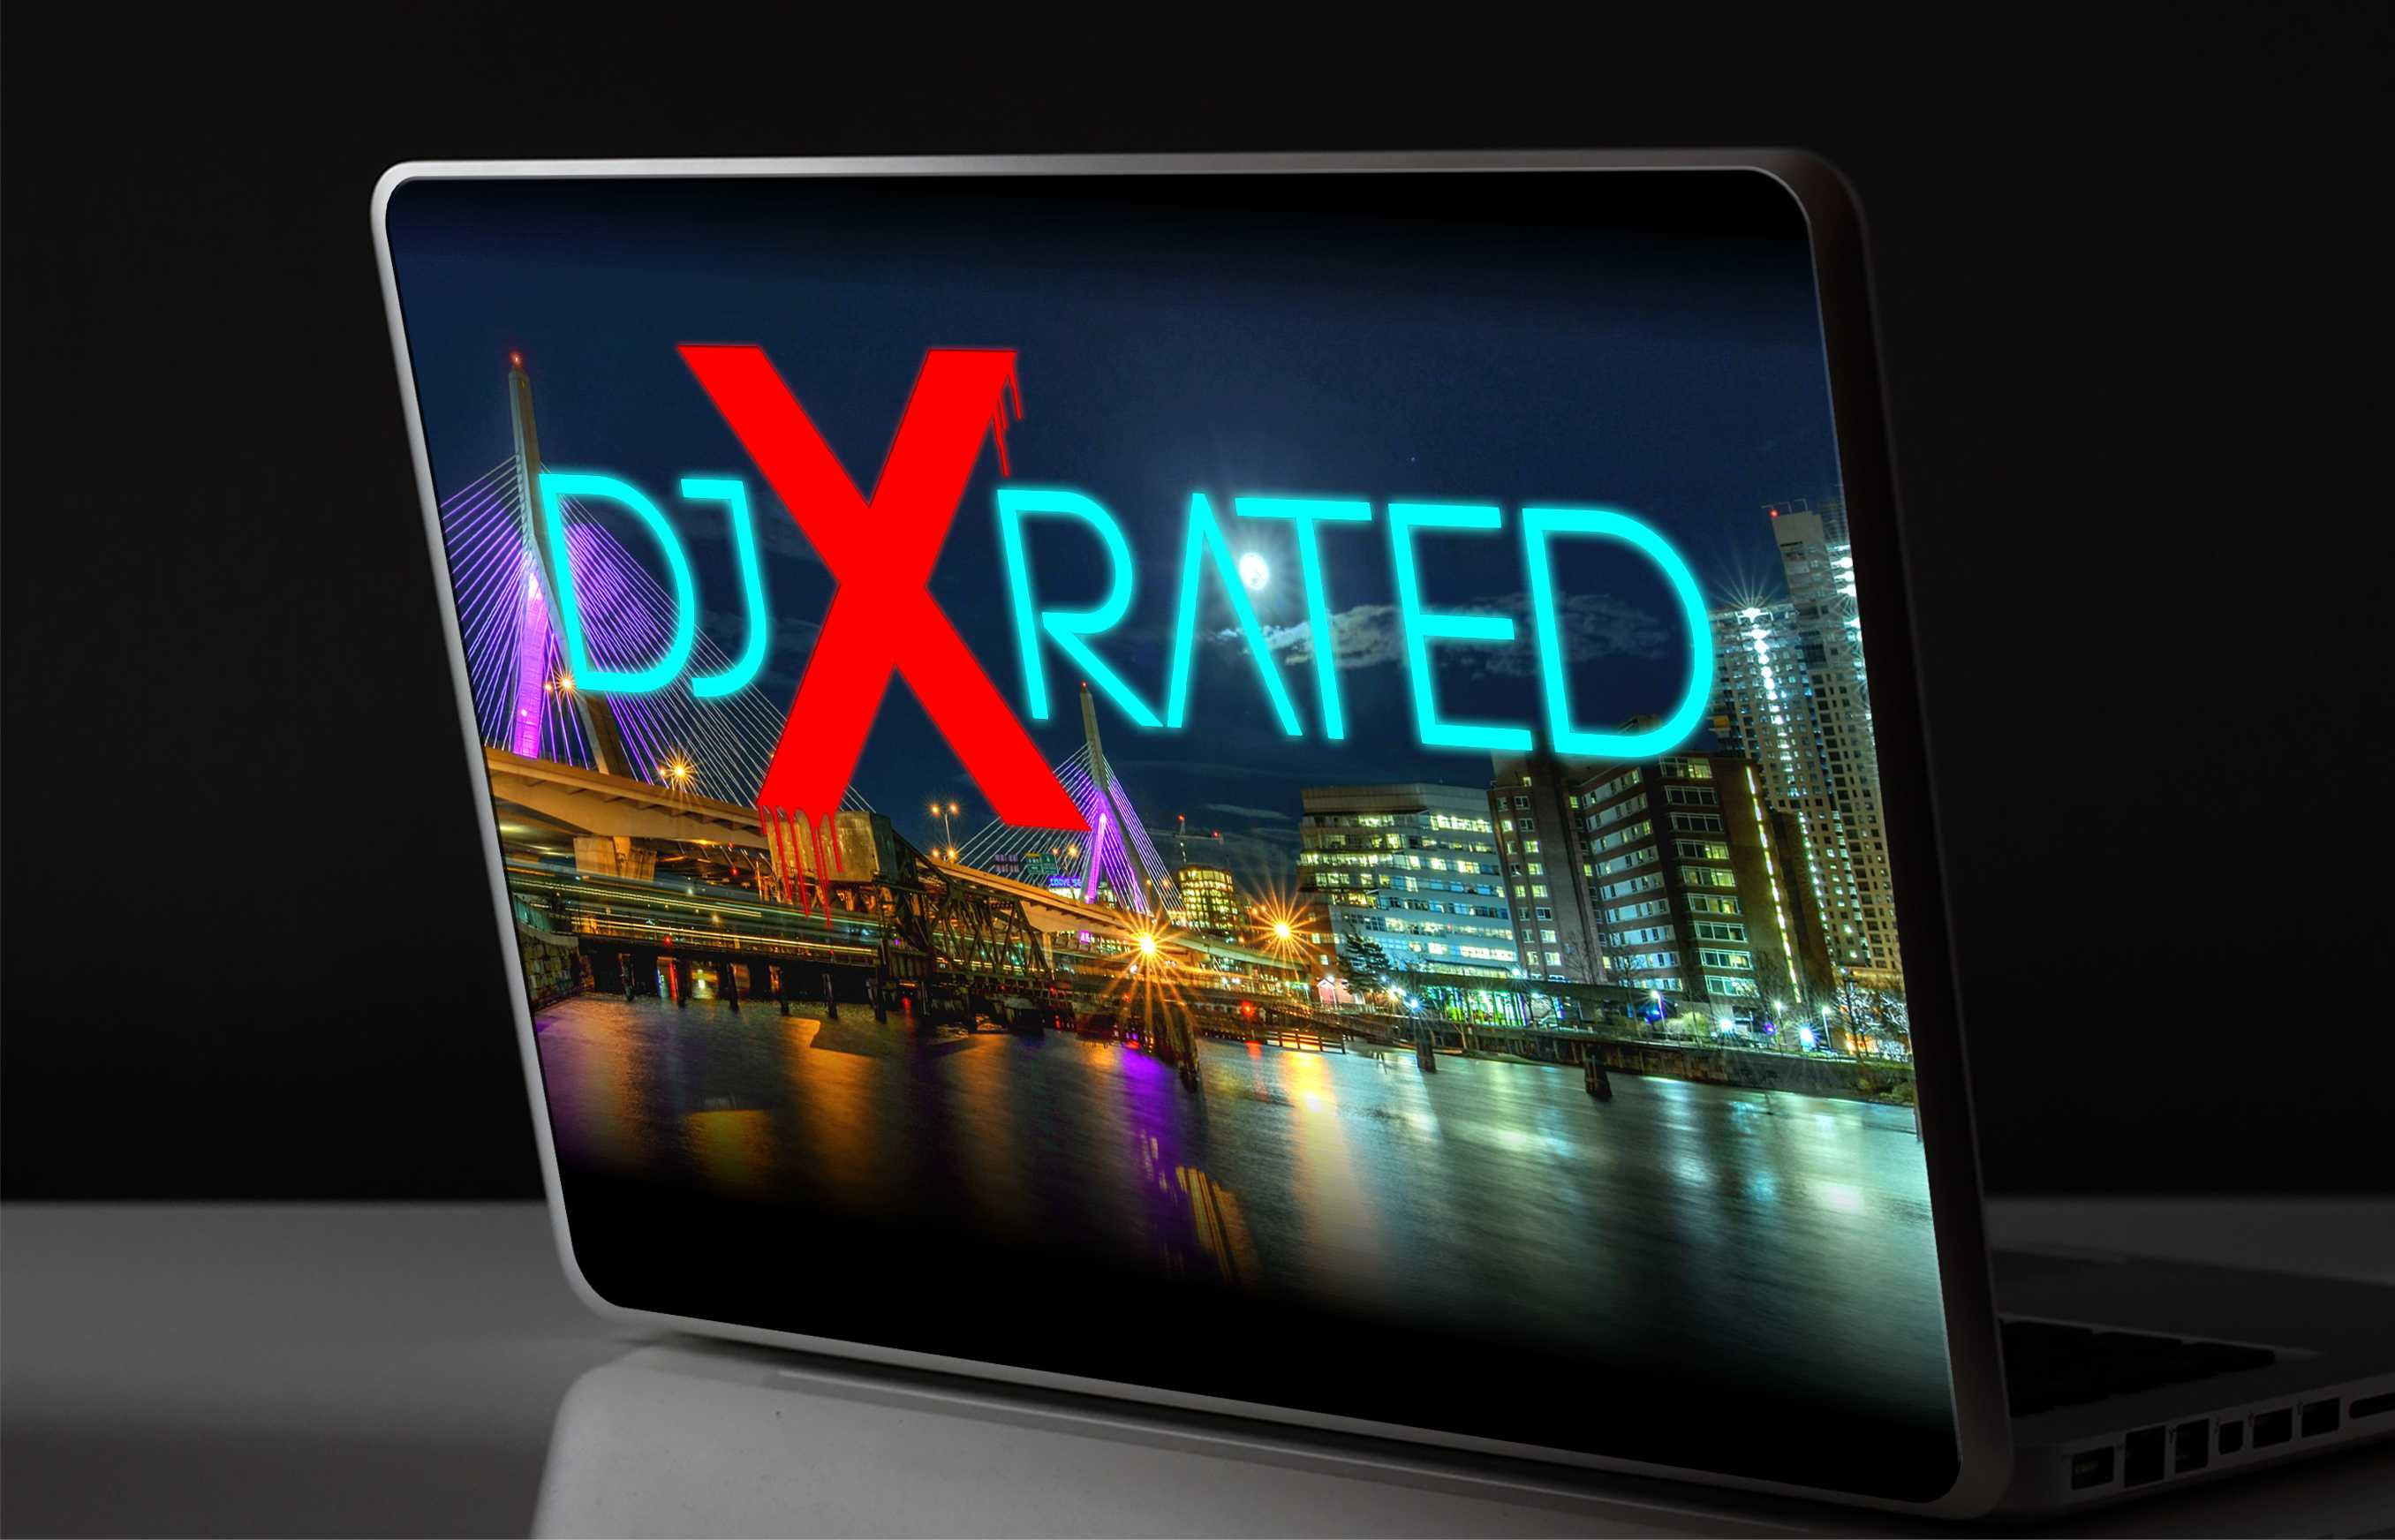 x rated